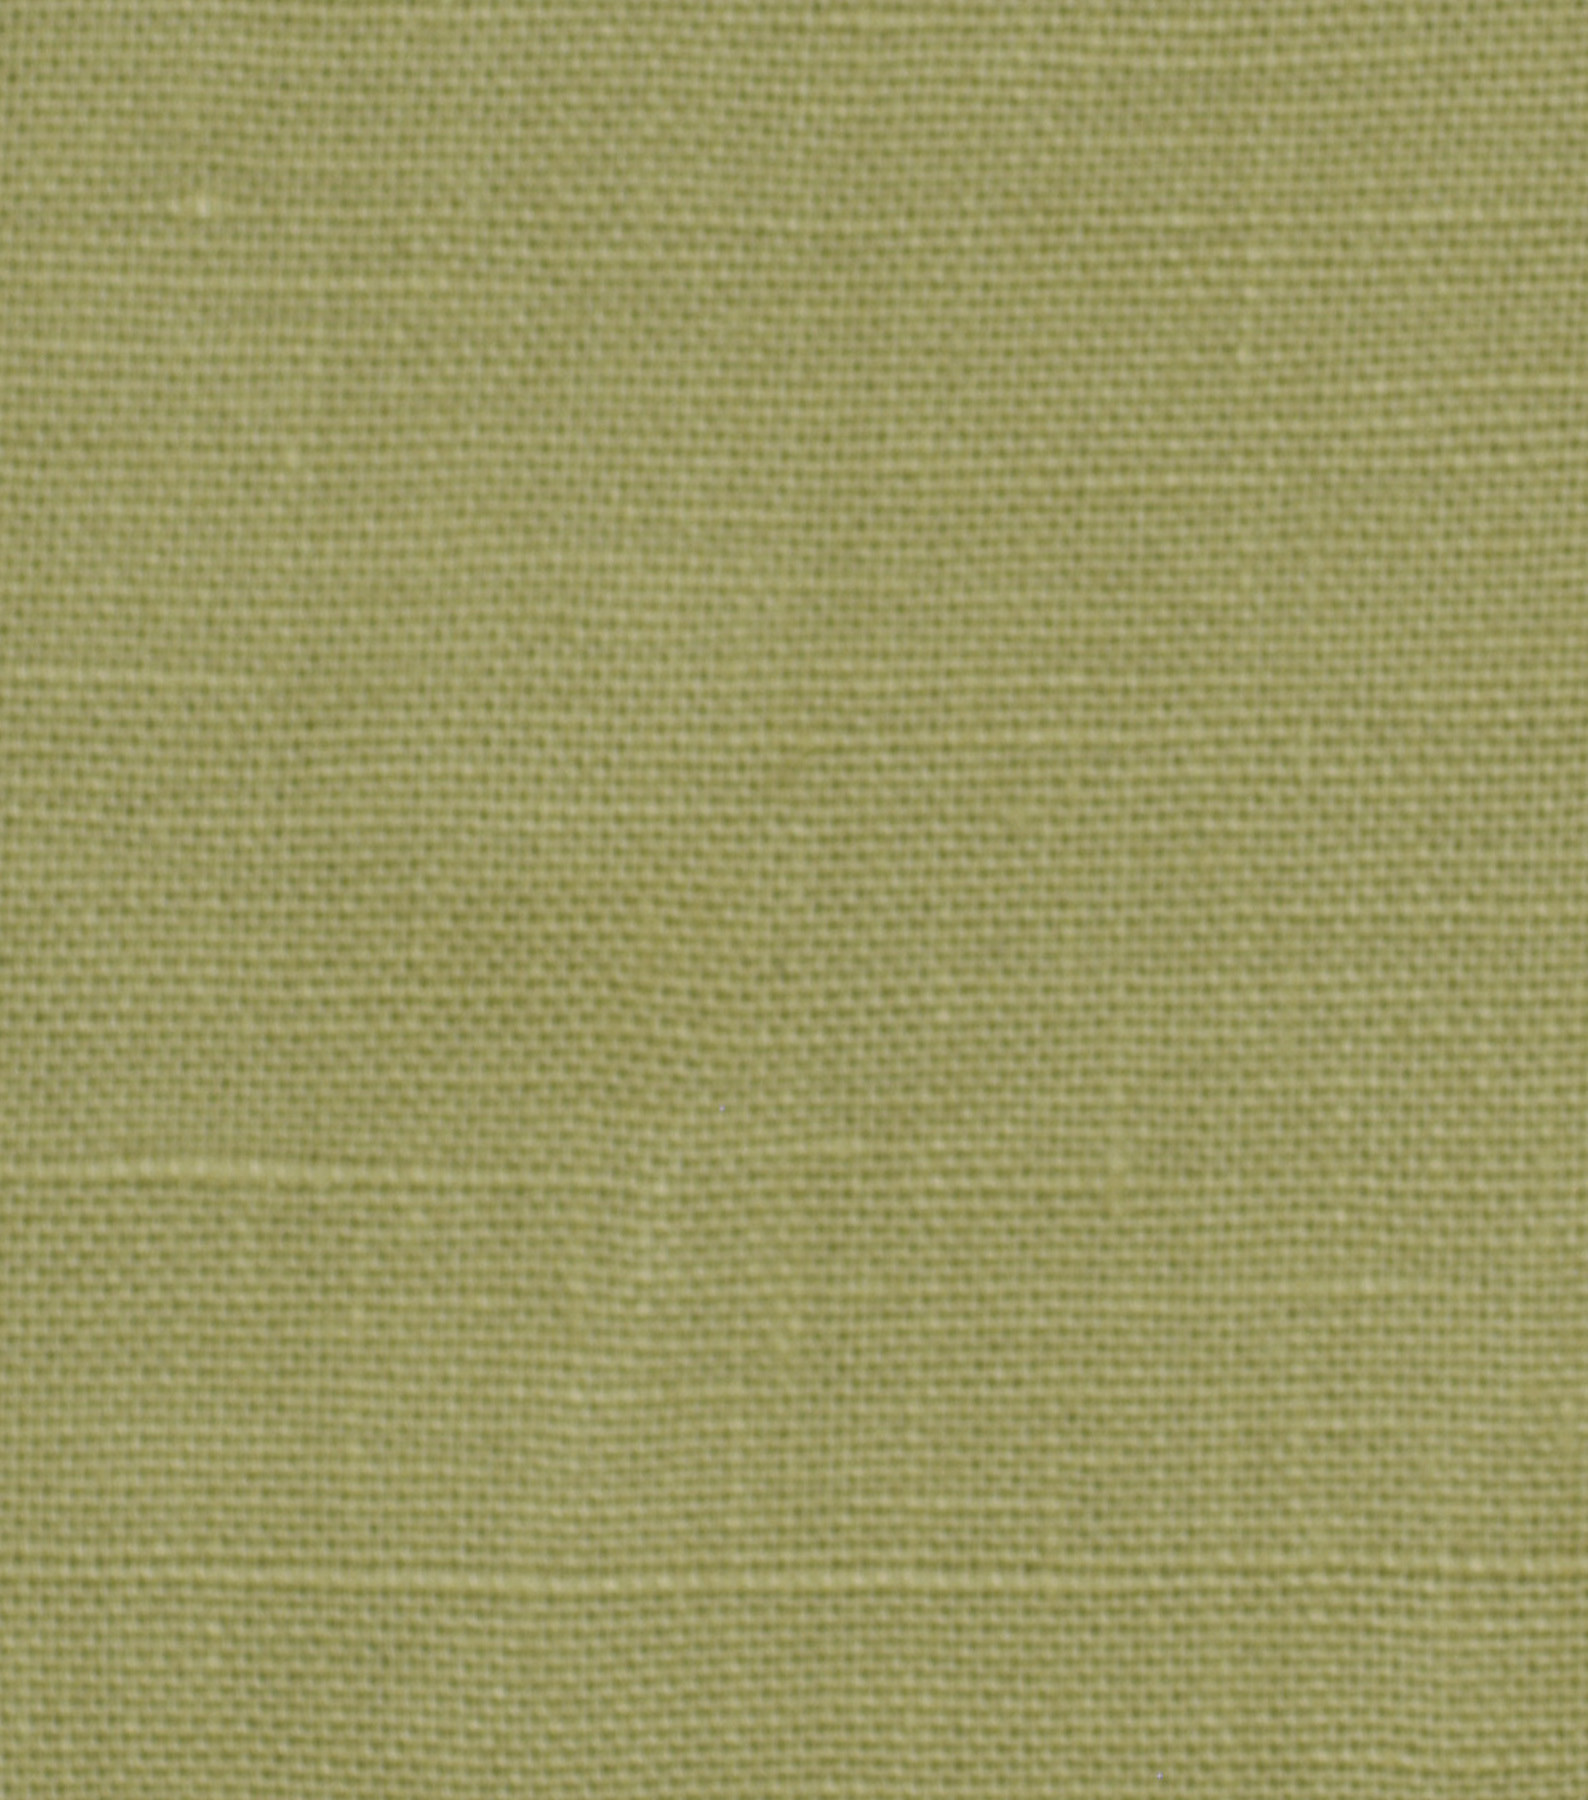 Home Decor 8\u0022x8\u0022 Fabric Swatch-Signature Series Kilrush Green Tea